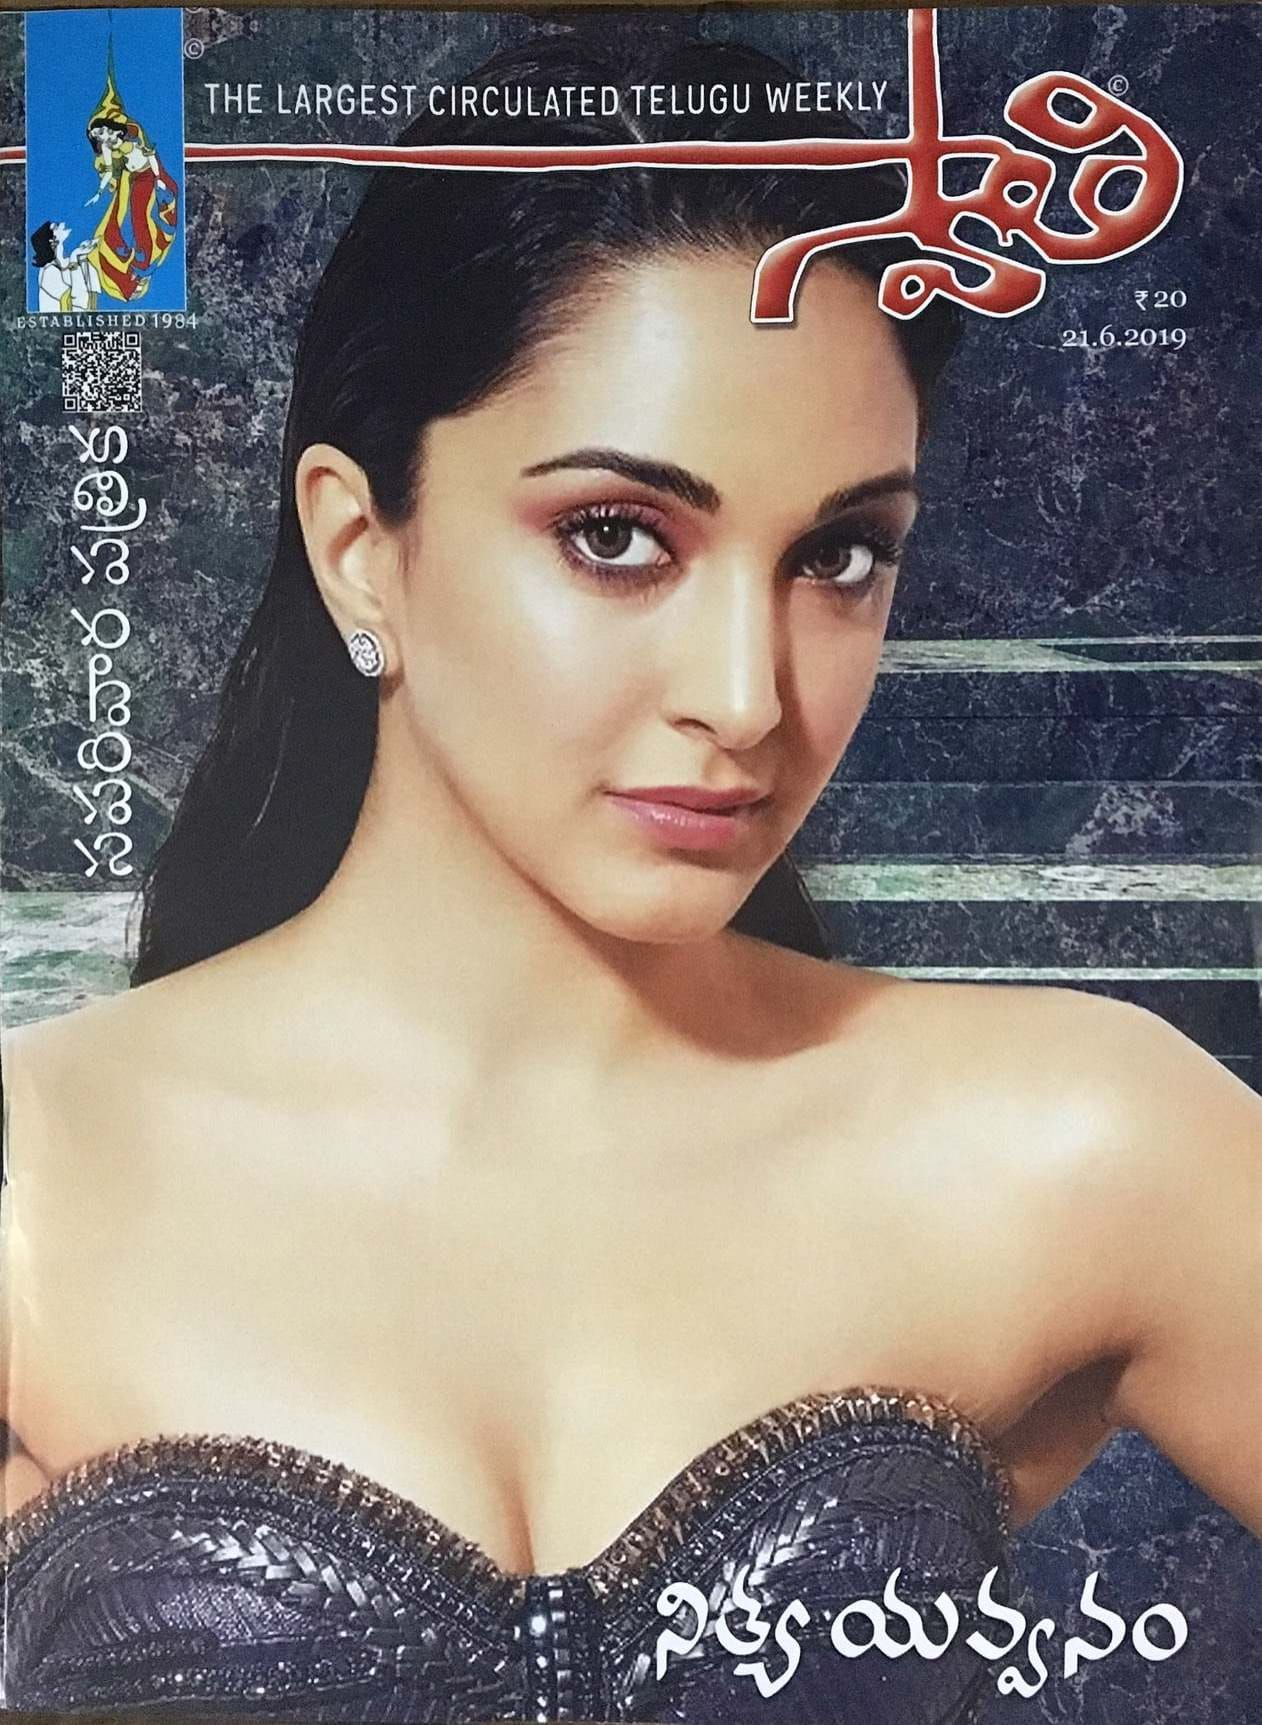 Swathi Weekly 21st June 2019 | News | Monthly magazine, June, Magazine